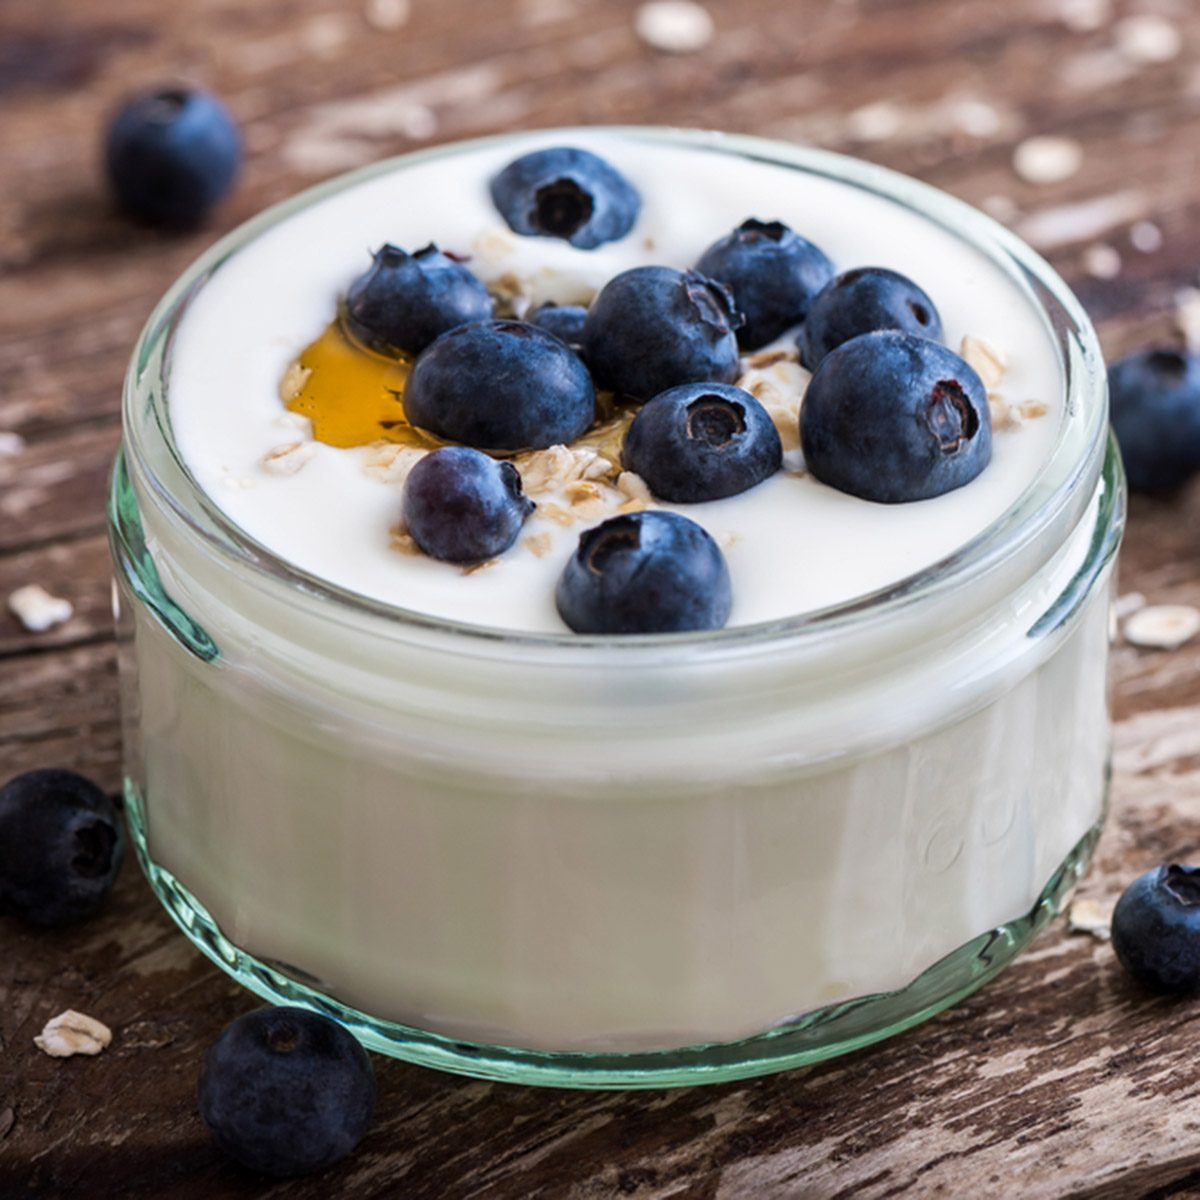 Serving of Yogurt with Whole Fresh Blueberries and Oatmeal on Old Rustic Wooden Table. Closeup Detail.; Shutterstock ID 298272557